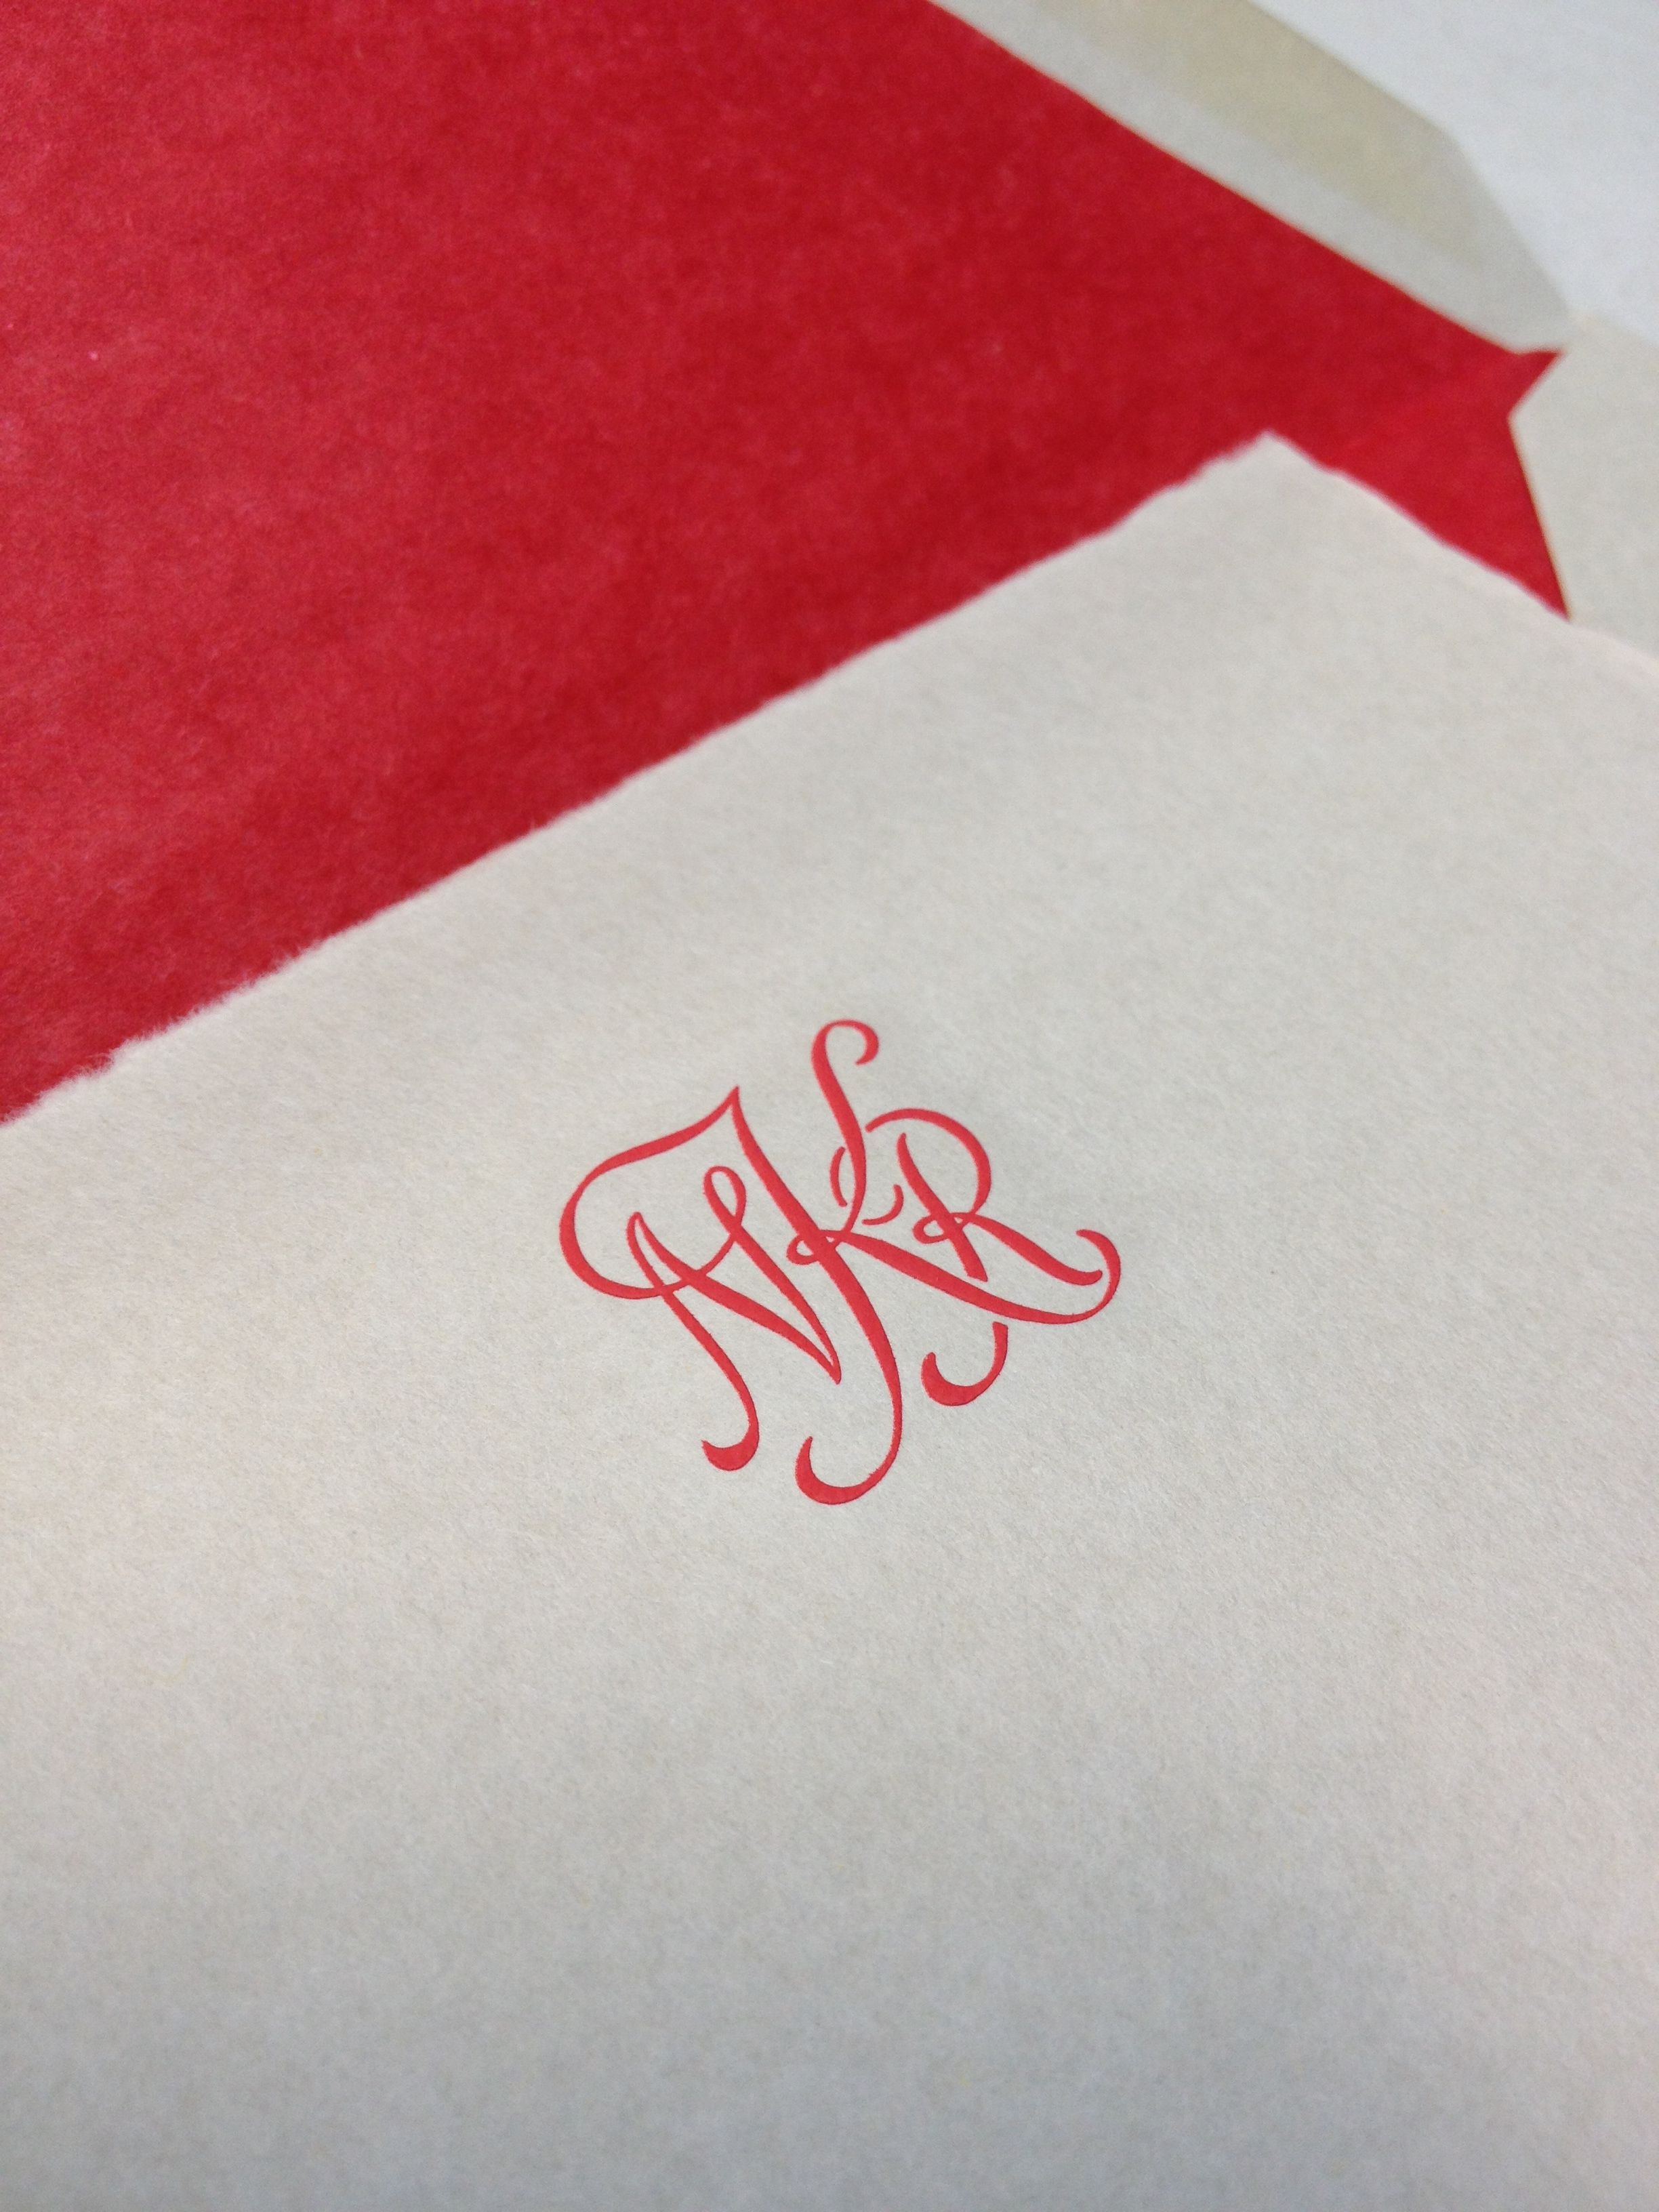 Arturo paper engraved in red - thanks Patricia DuCharme Fine ...